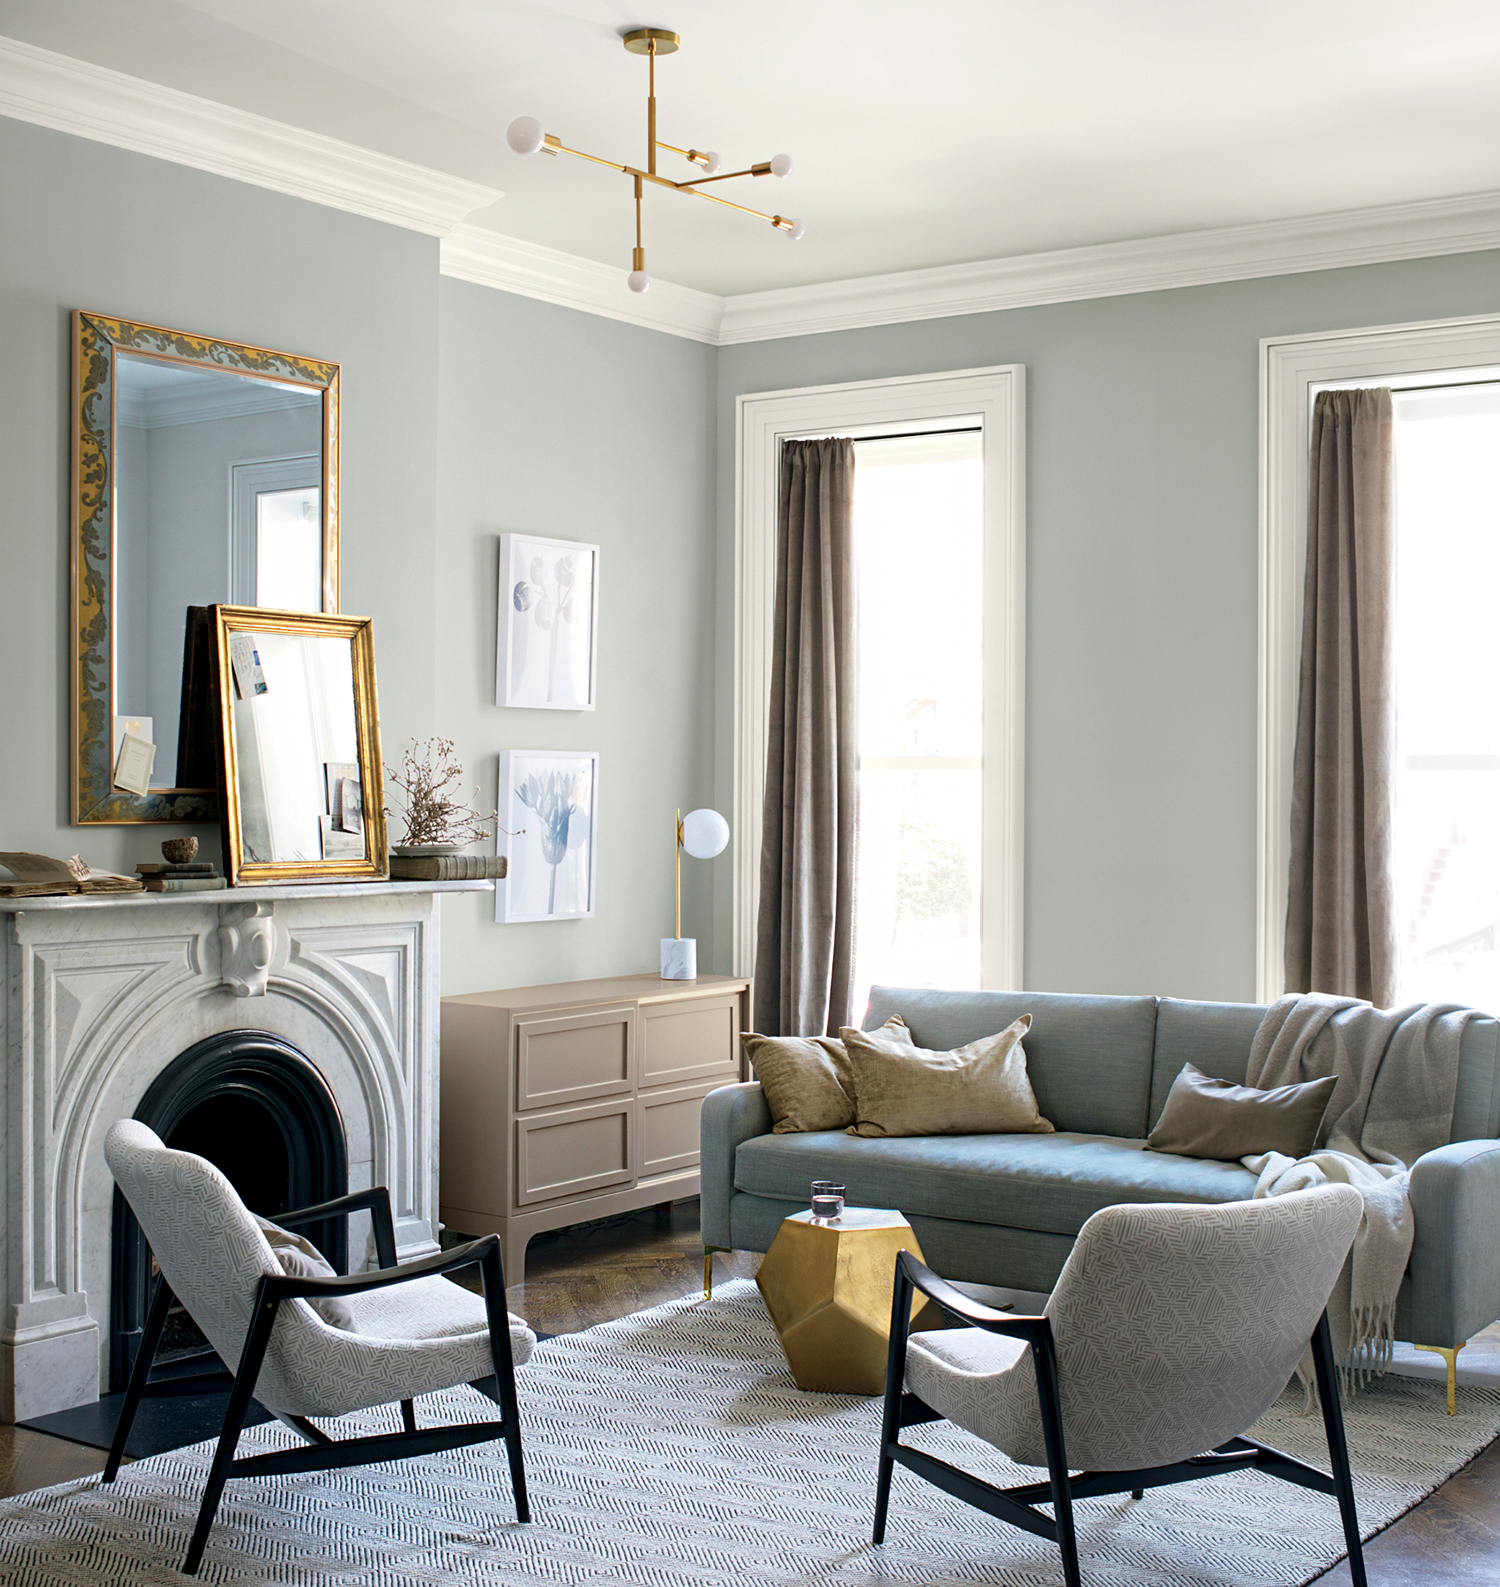 Home Design Ideas Colors: These Are The Most Popular Living Room Paint Colors For